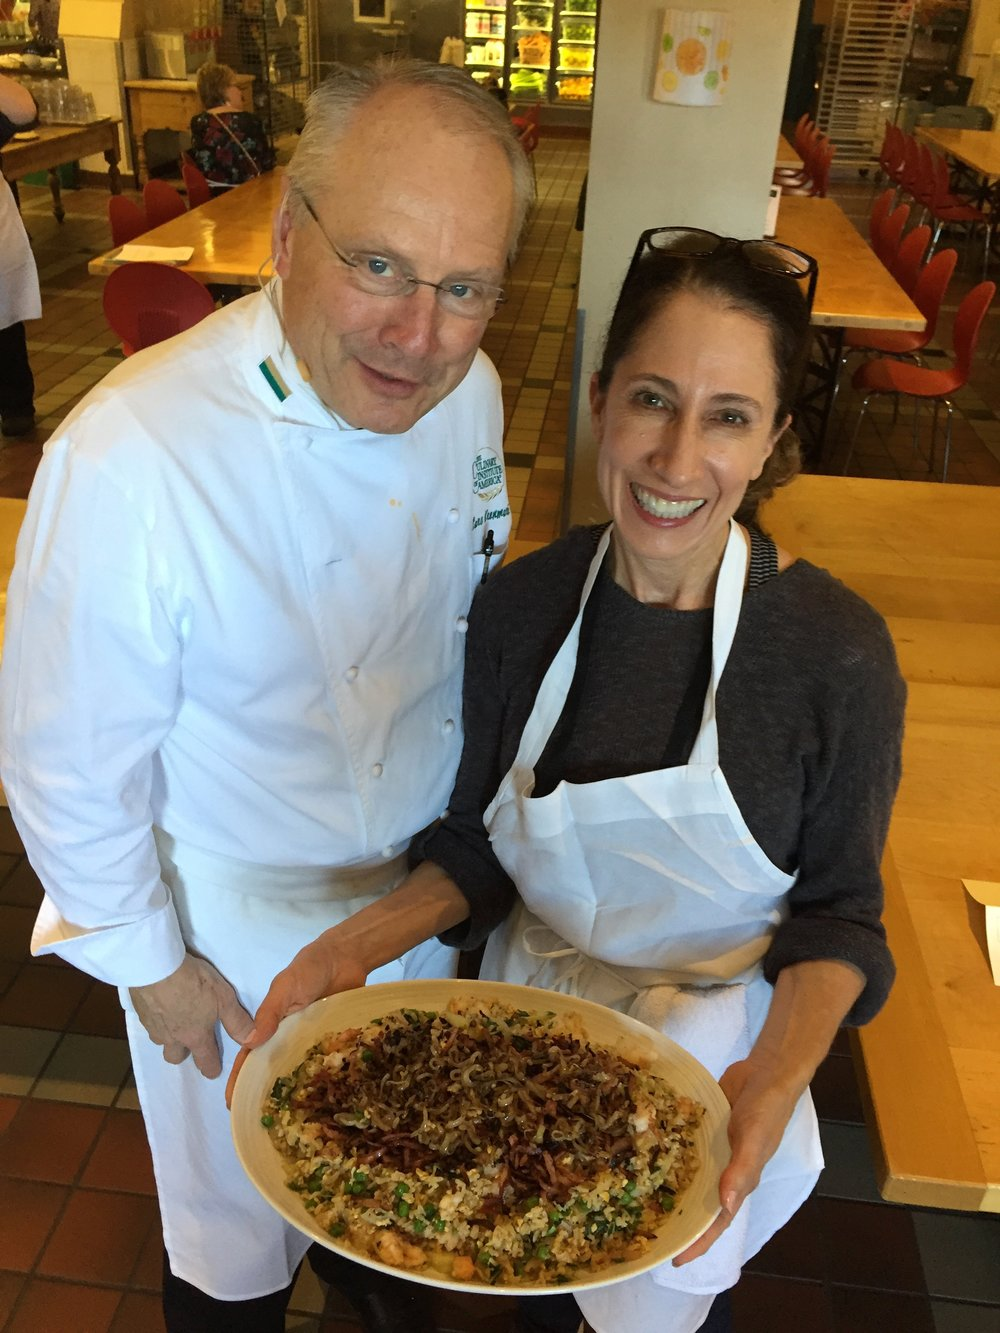 Brenda with Chef Lars Kronmark, Culinary Institute of America, Healthy Kitchens Healthy Lives conference